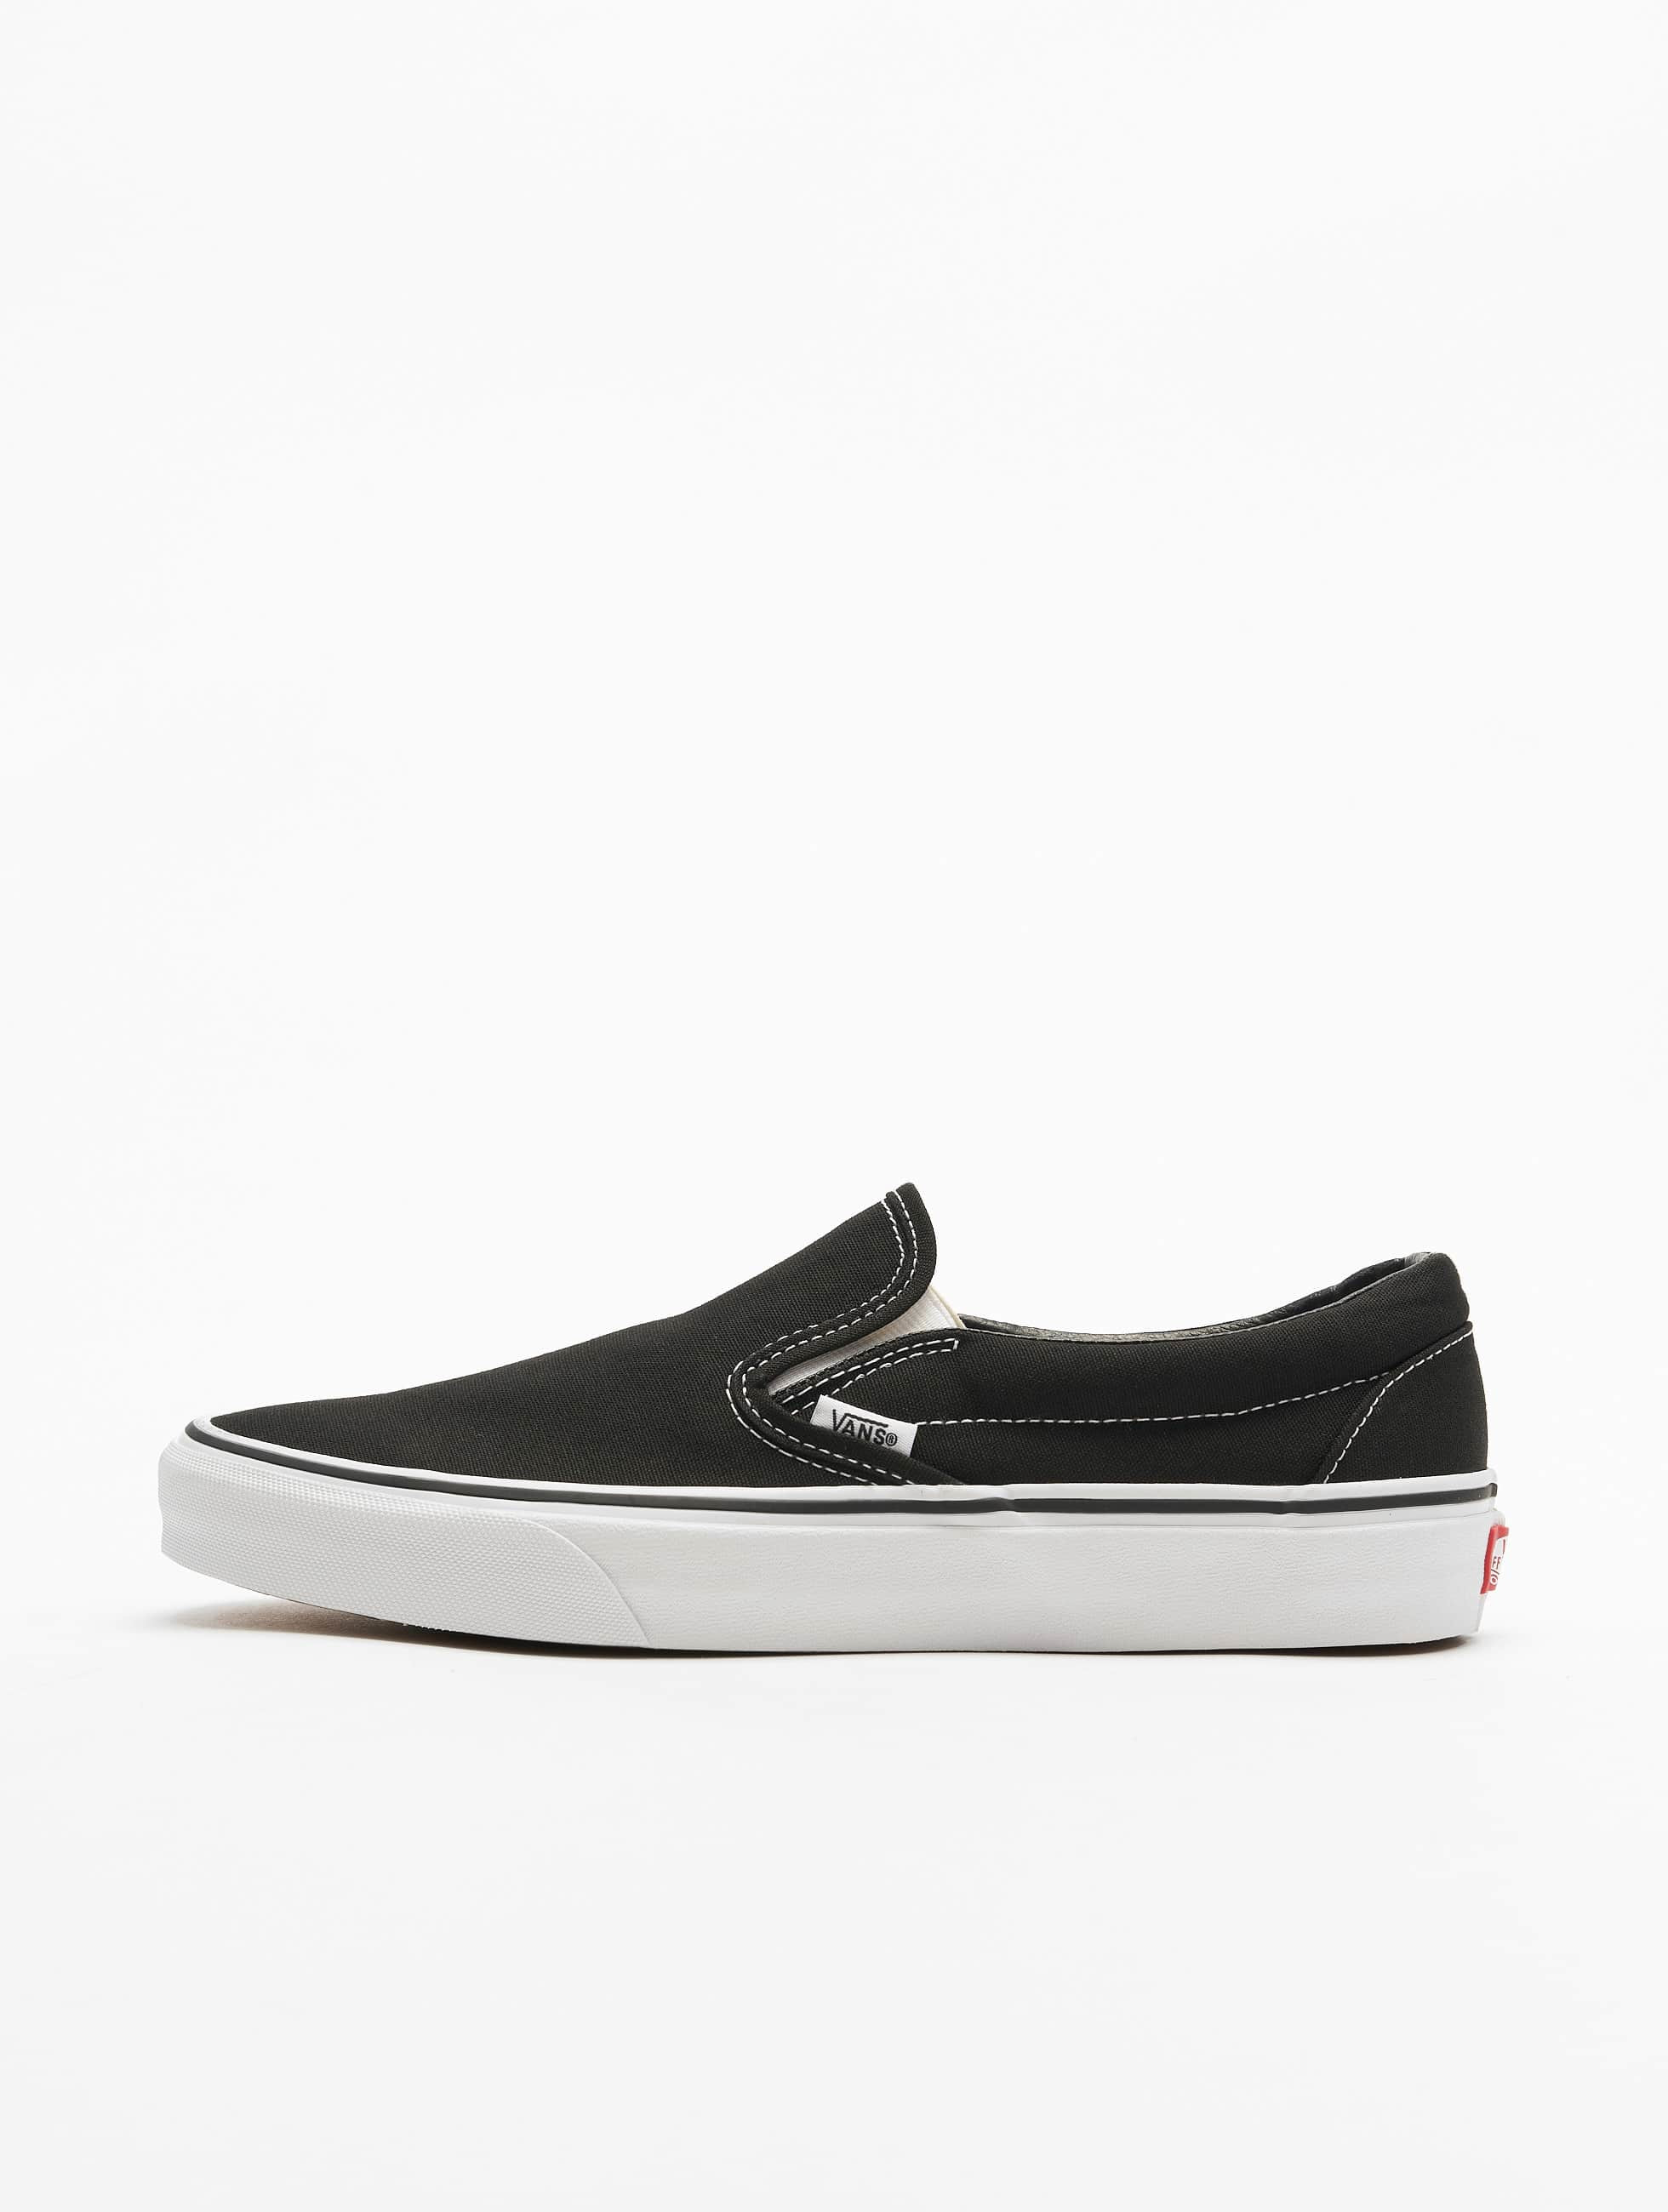 vans damen schuhe sneaker classic slip on ebay. Black Bedroom Furniture Sets. Home Design Ideas